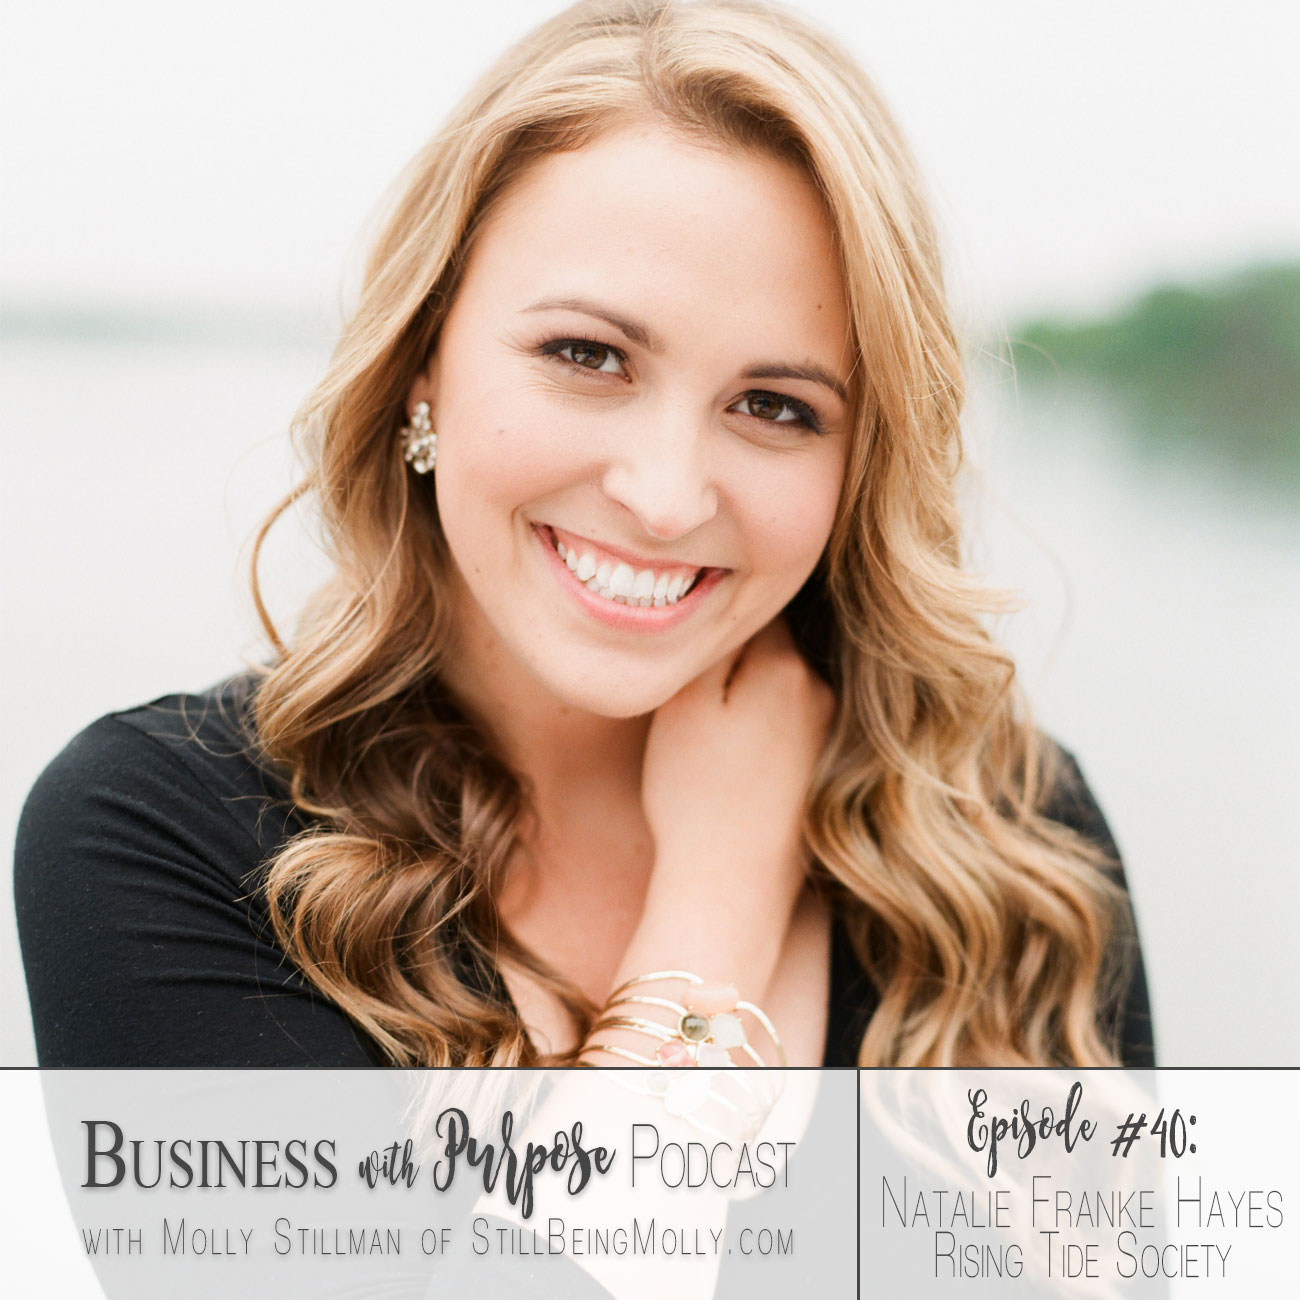 EP 40: Natalie Franke Hayes, Co-Founder of the Rising Tide Society